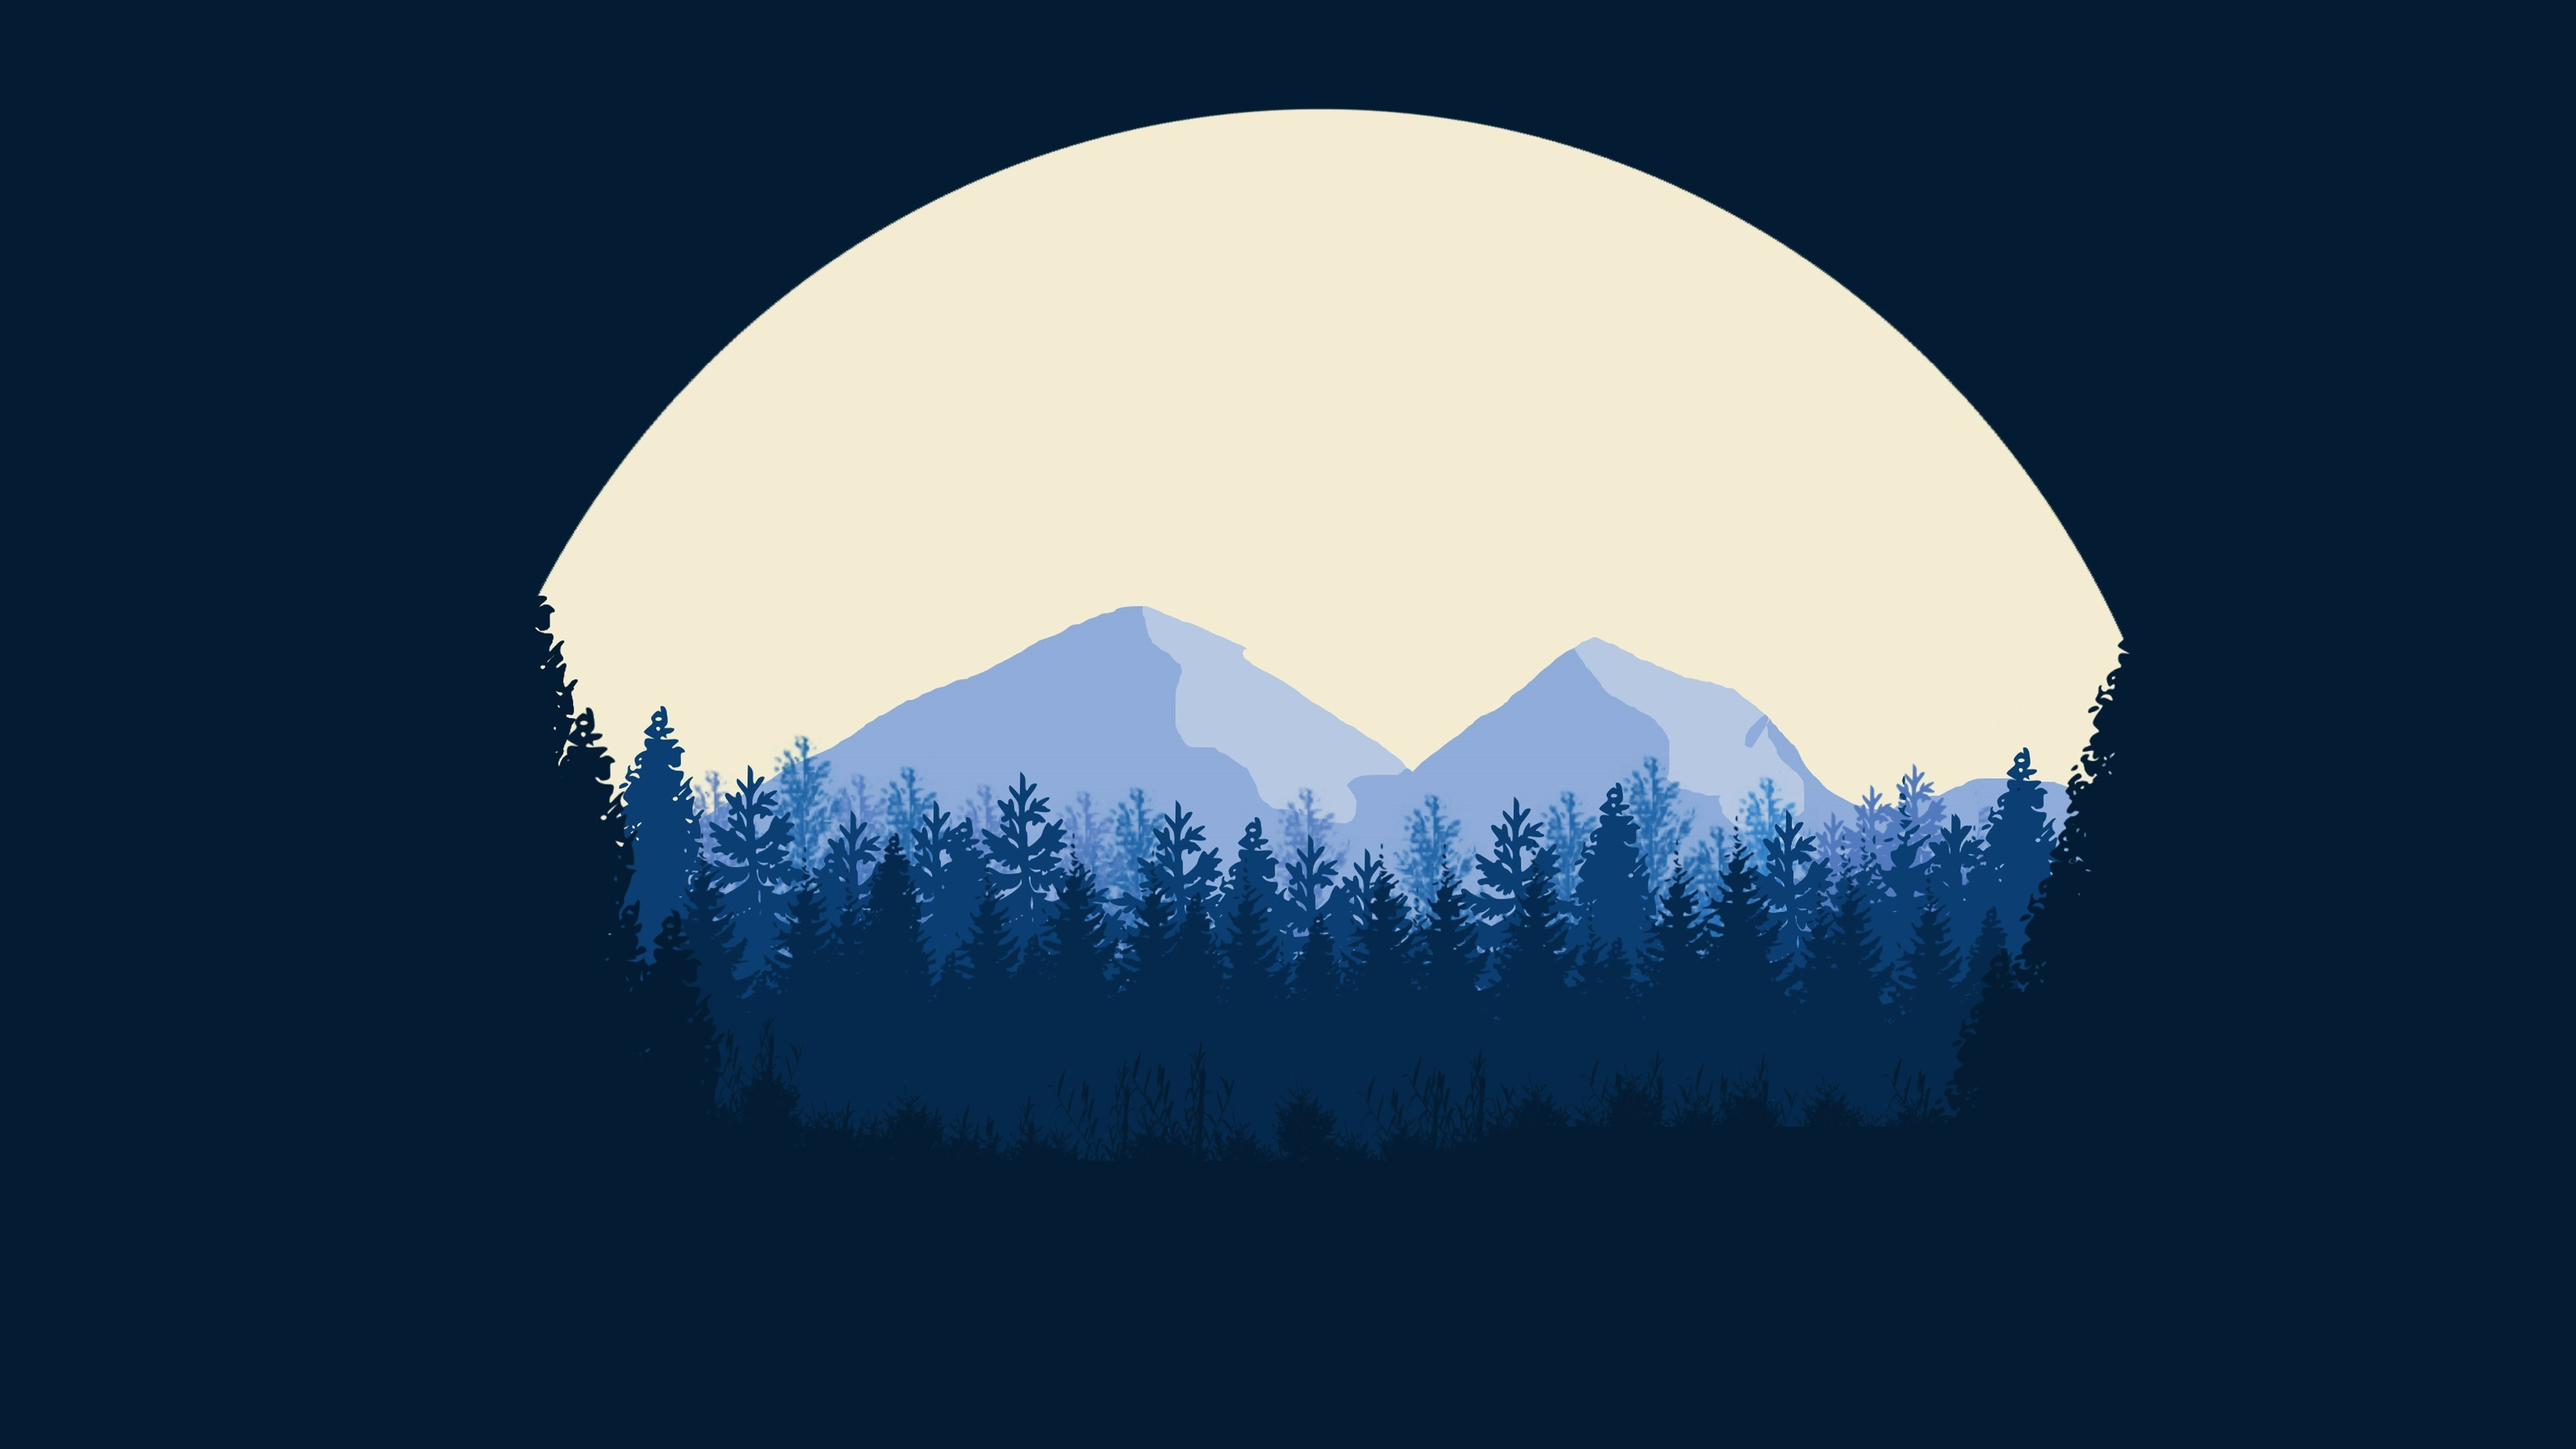 3840x2160 Minimalist Mountains 4k HD 4k Wallpapers, Images ...